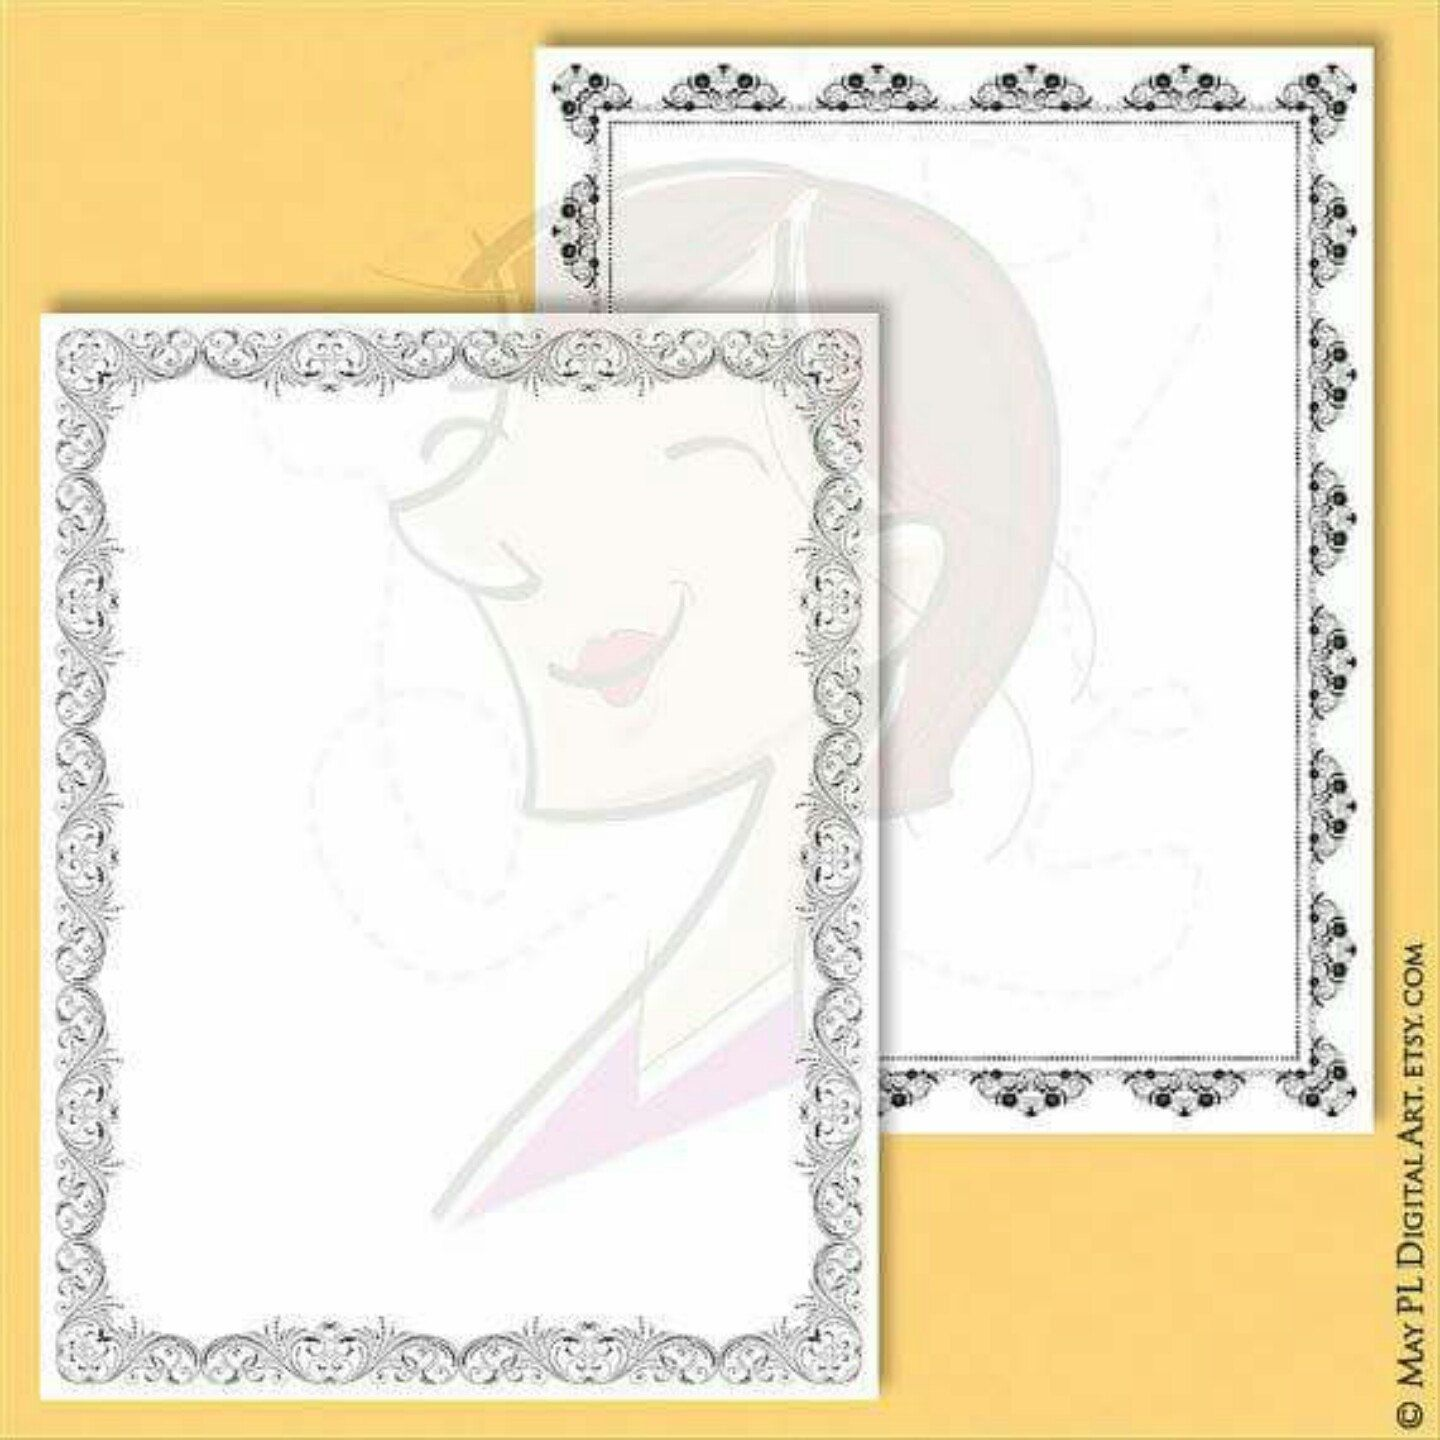 Page Borders Clipart - Flourish Design 8 x 11 size perfect for DIY ...